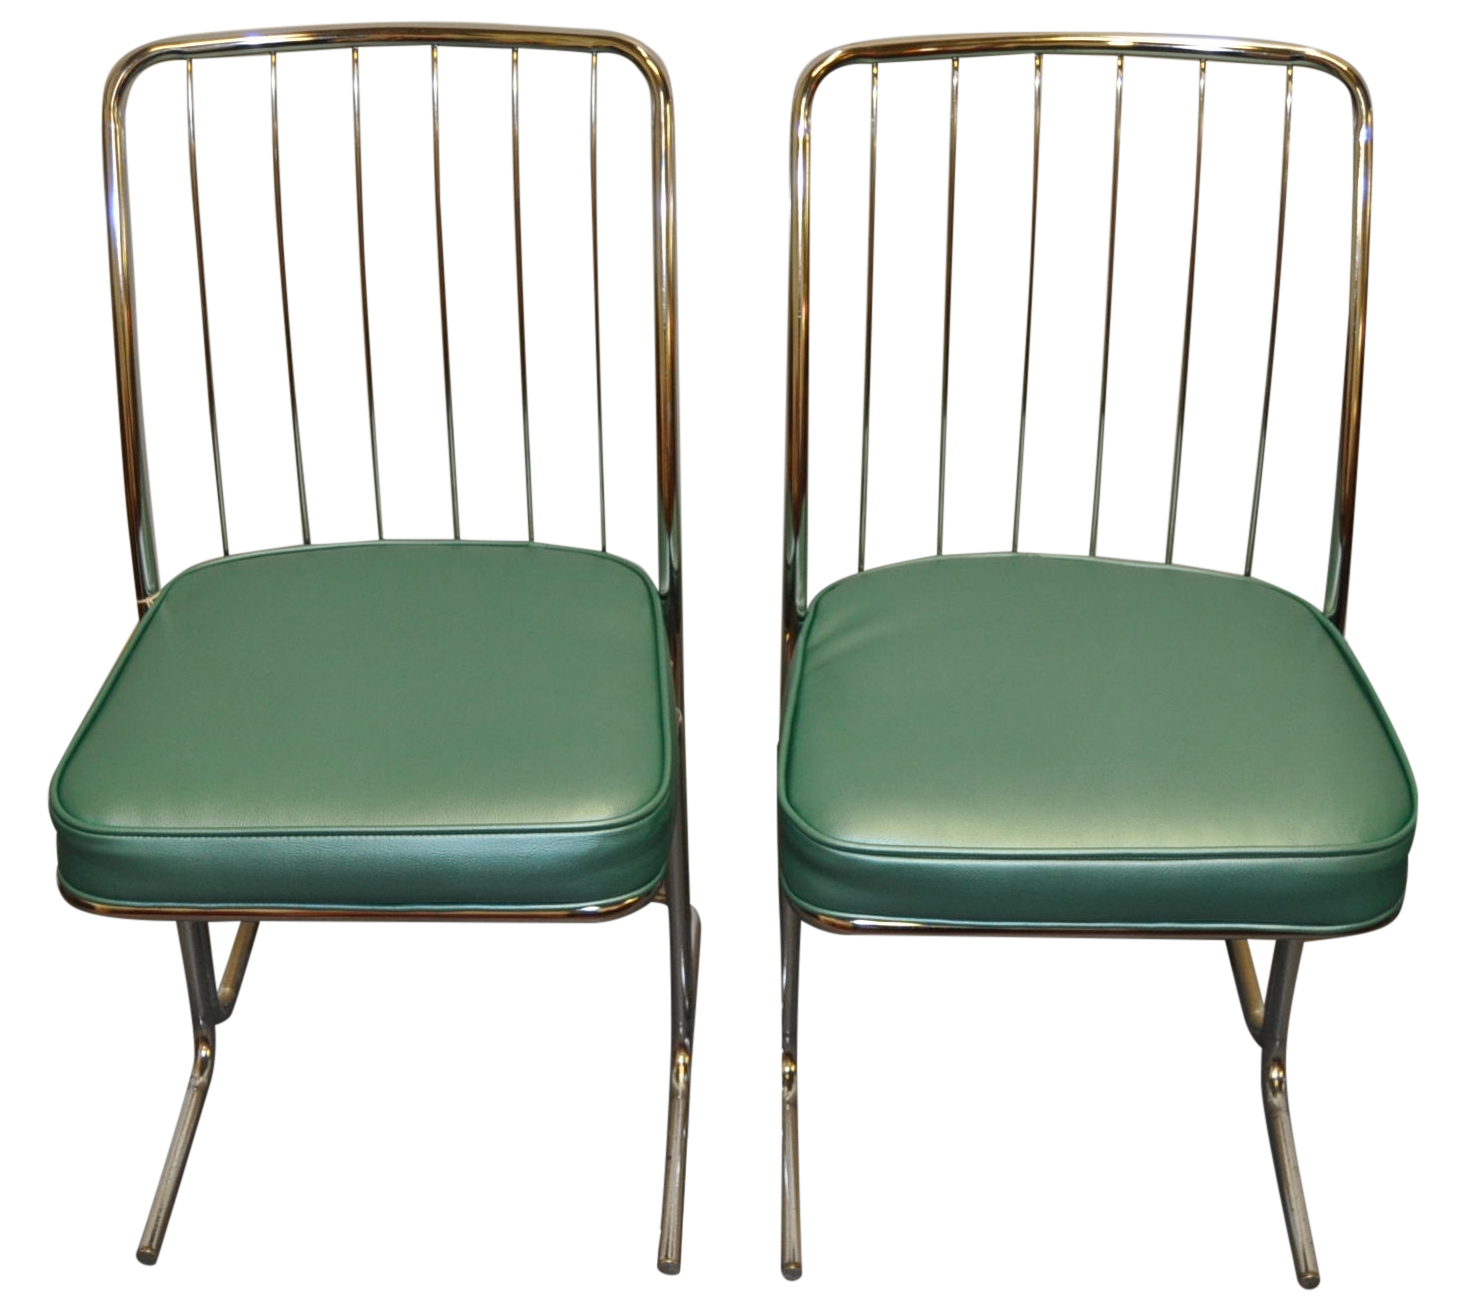 1950s Chrome & Vinyl Kitchen Chairs  Set Of Four  Chairish. Living Room Leather Sofa Sets. Living Room Christmas Decorating Ideas Uk. Pictures Of Living Room With Gray Walls. Tiny Living Room Decor Ideas. Living Room Couch Images. Living Rooms With Light Gray Paint. Raymour And Flanigan Living Room Furniture Sets. Patterned Drapes In Living Room